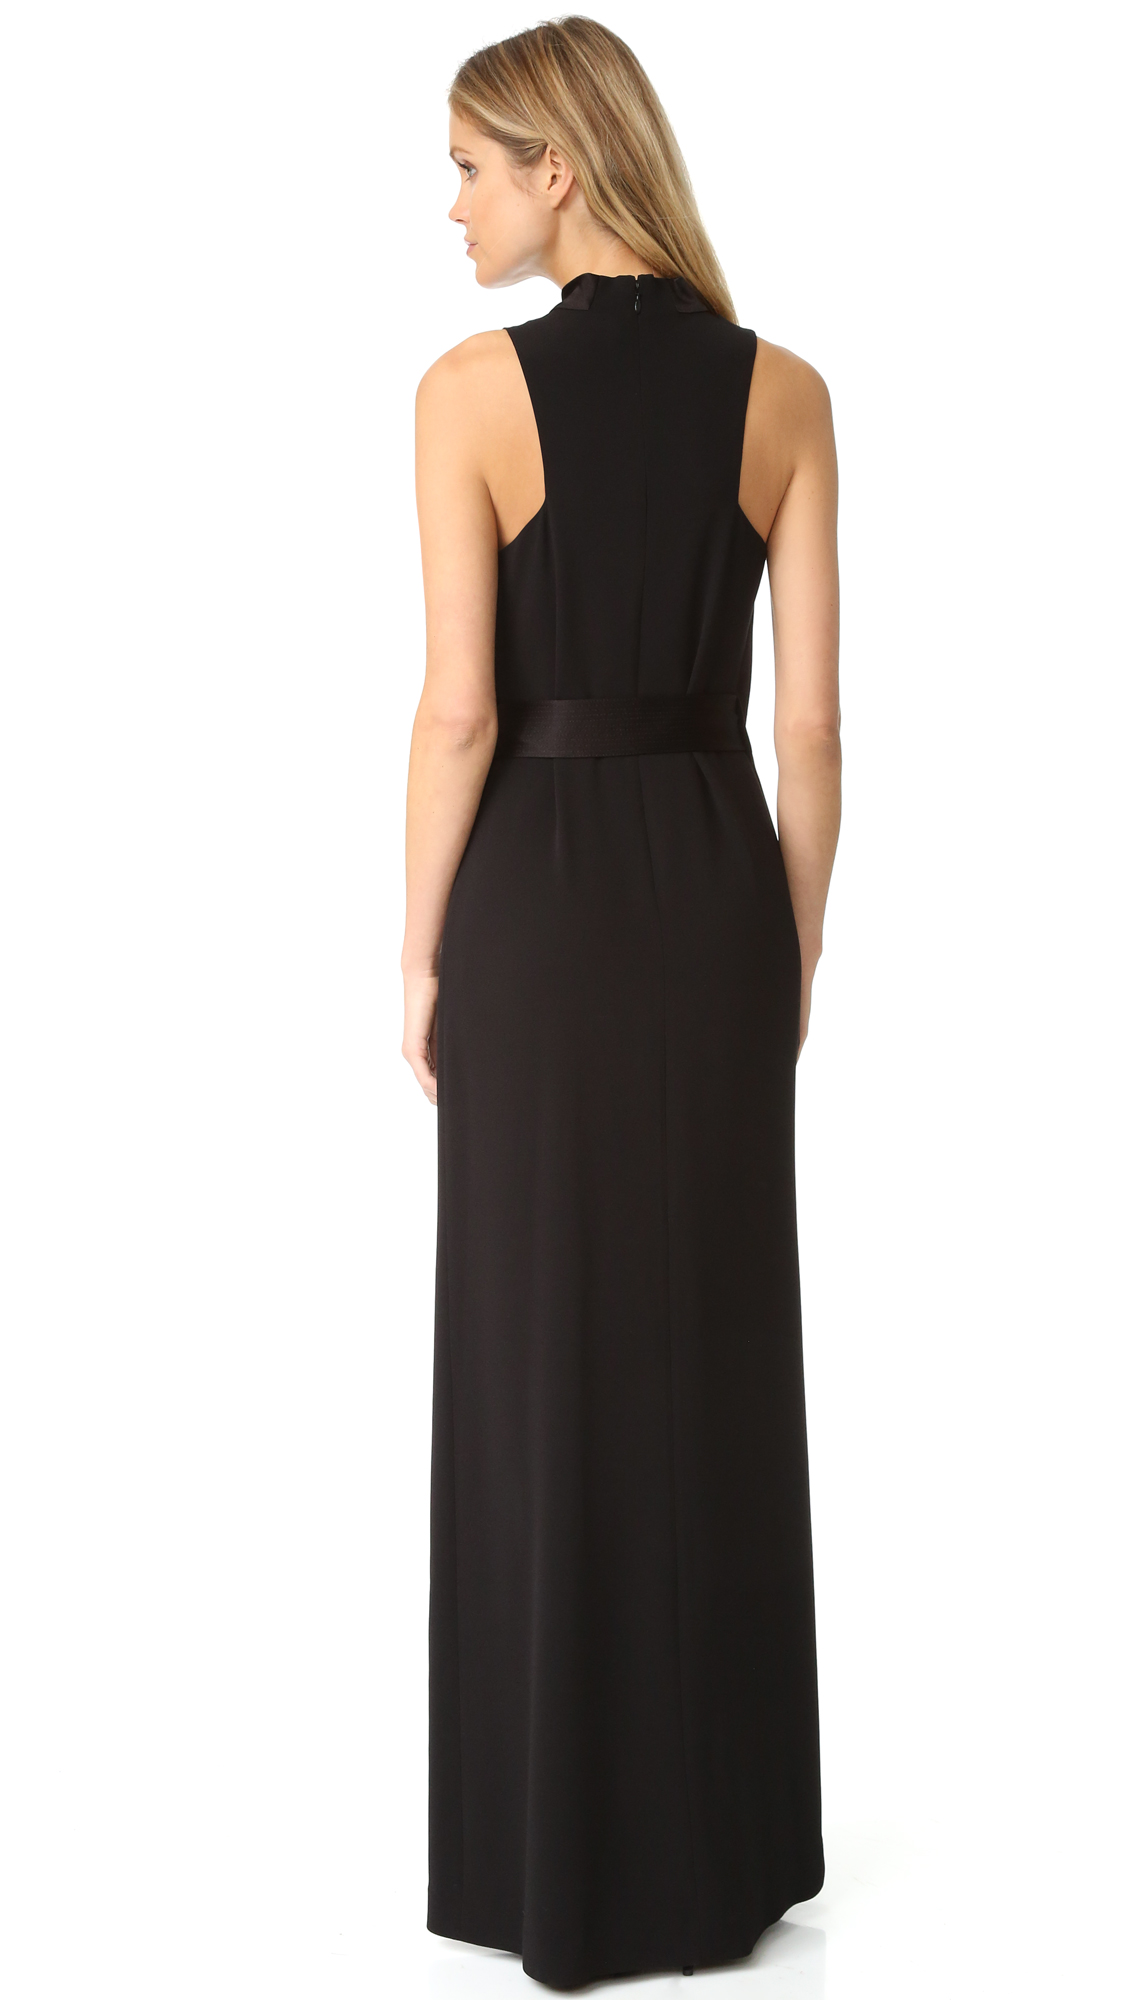 3157cd0214 Halston Heritage Draped Neck Satin Gown with Belt